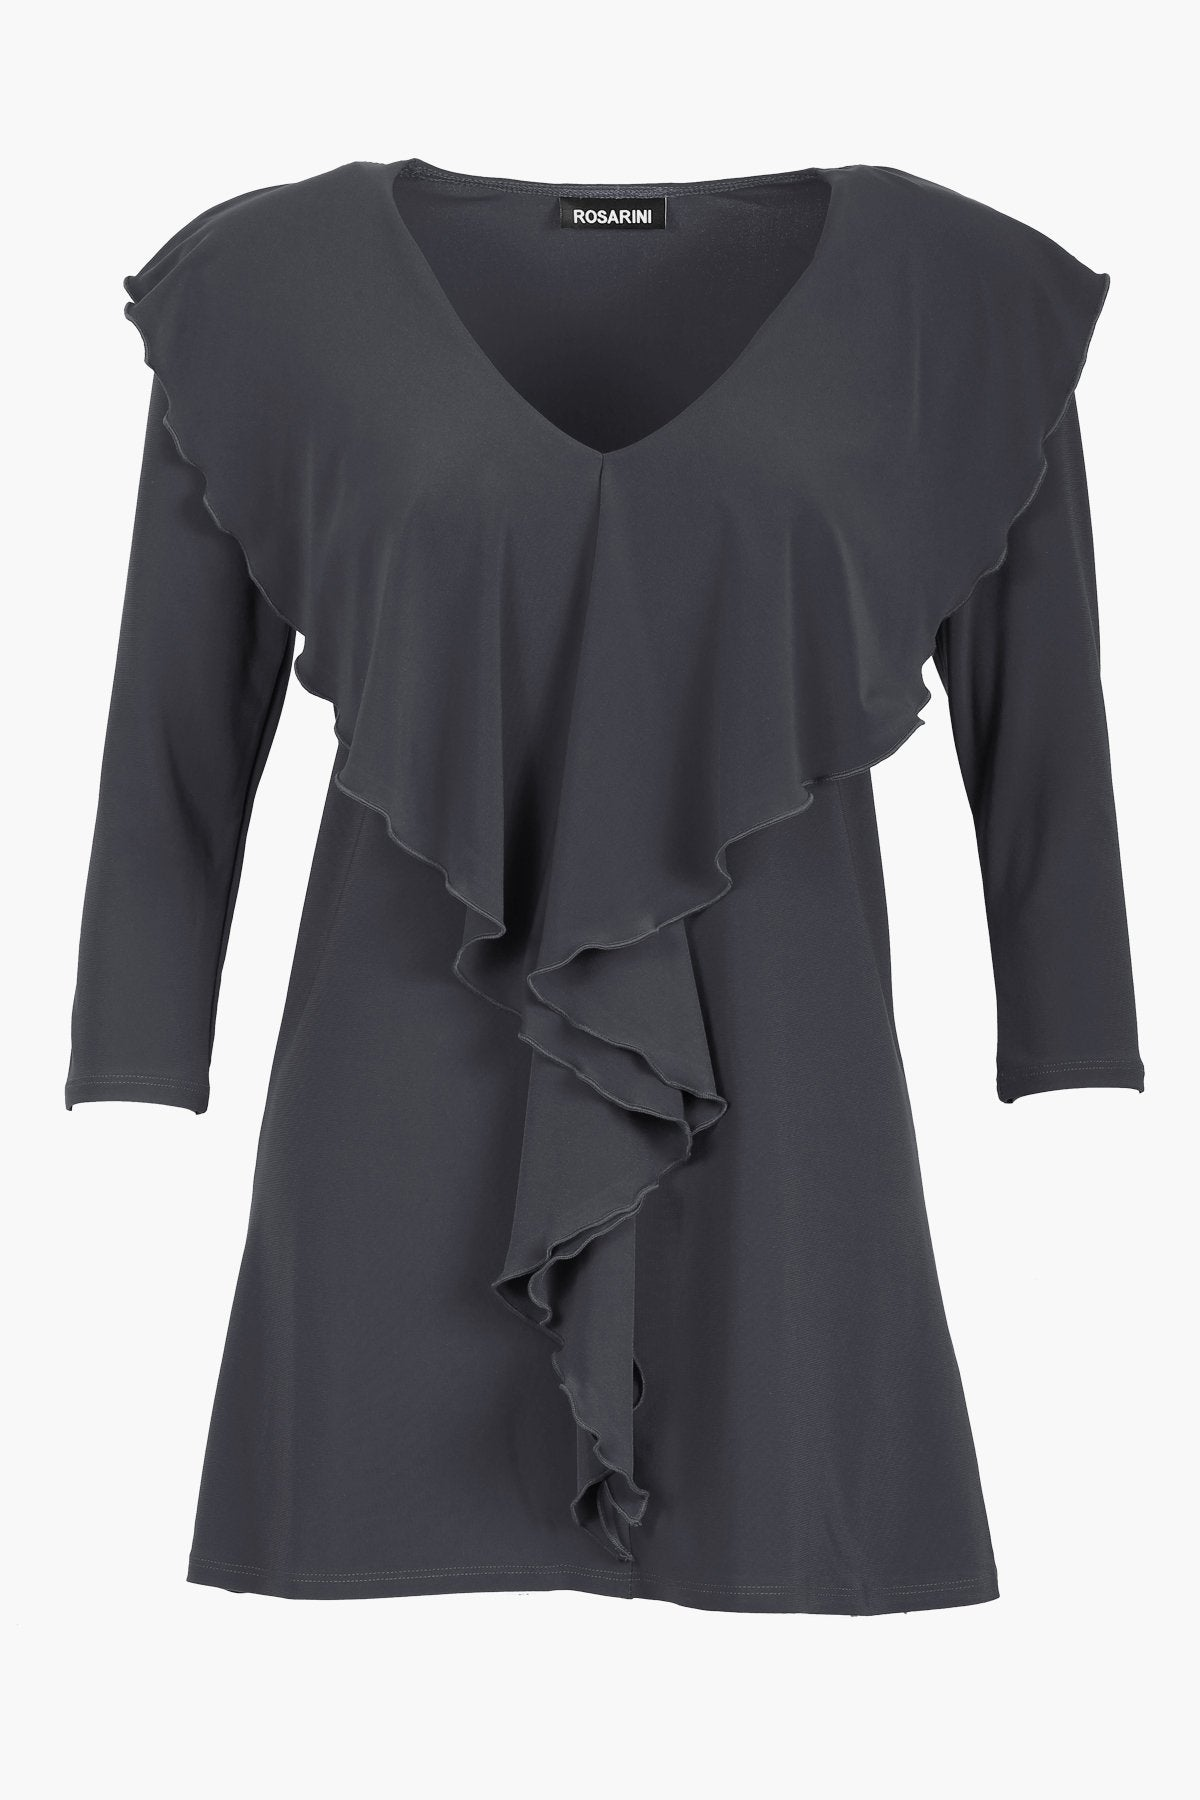 Ruffle Top - Women's Clothing -ROSARINI